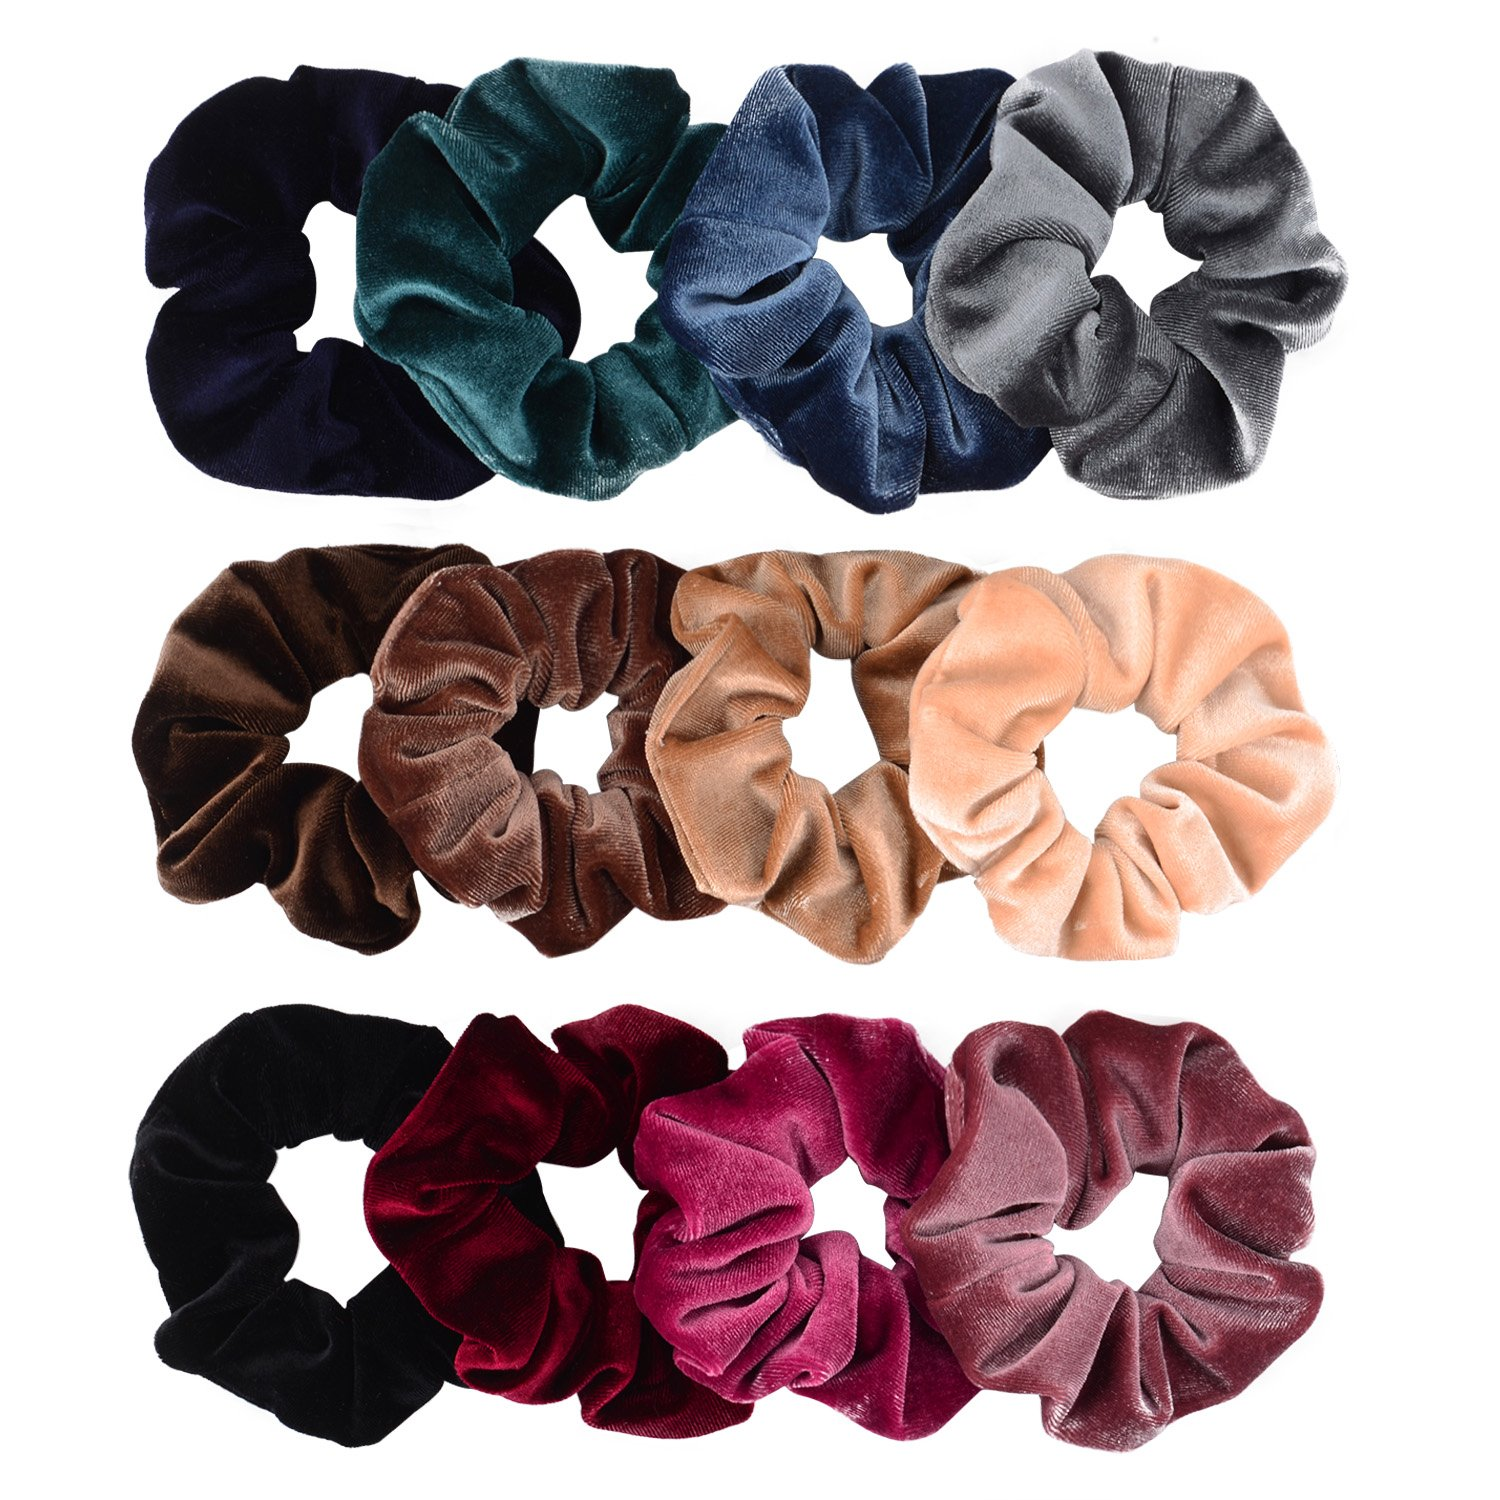 Whaline 12 Pack Hair Scrunchies Premium Velvet Scrunchy Elastic Hair Bands for Girls, Women Hair Accessories (12 Colors)